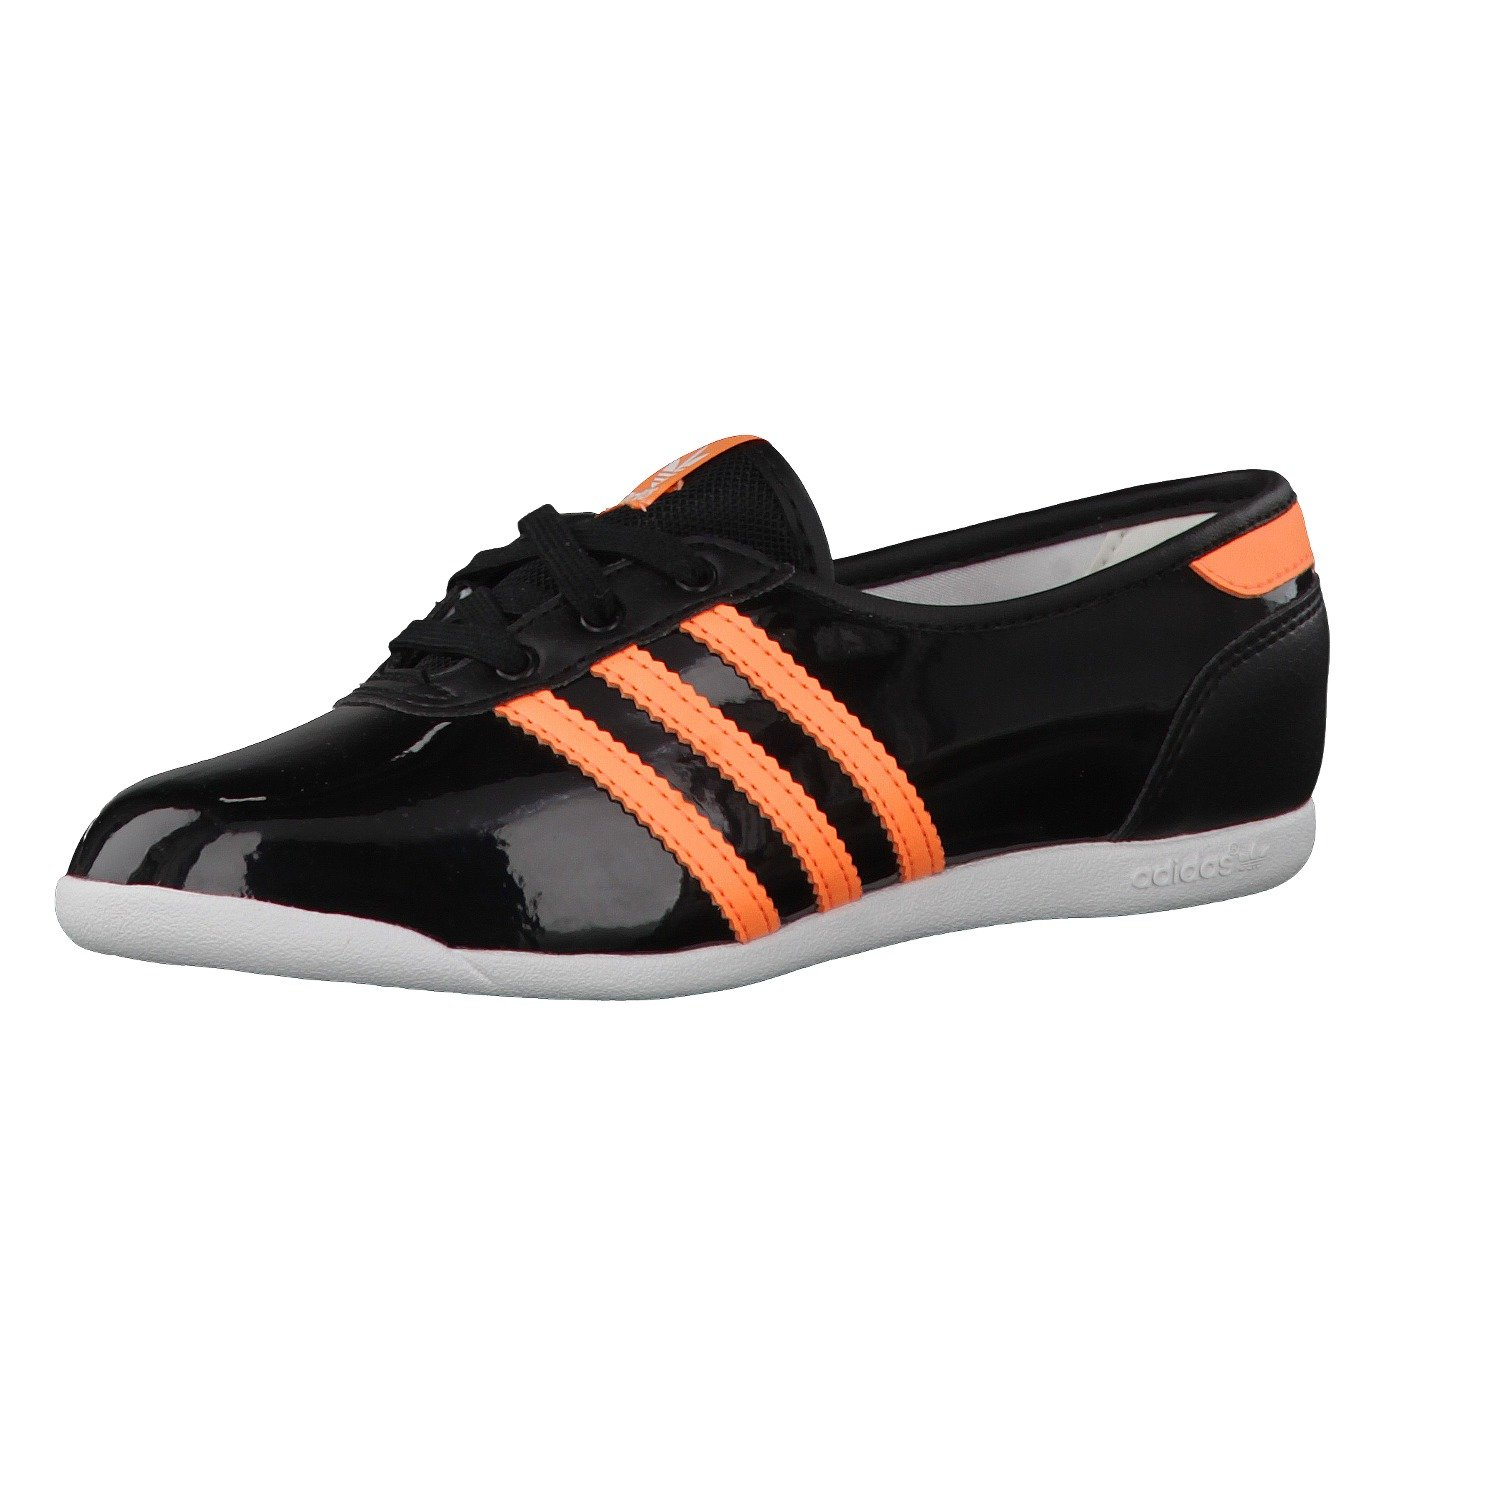 Comment Taille Adidas Neo